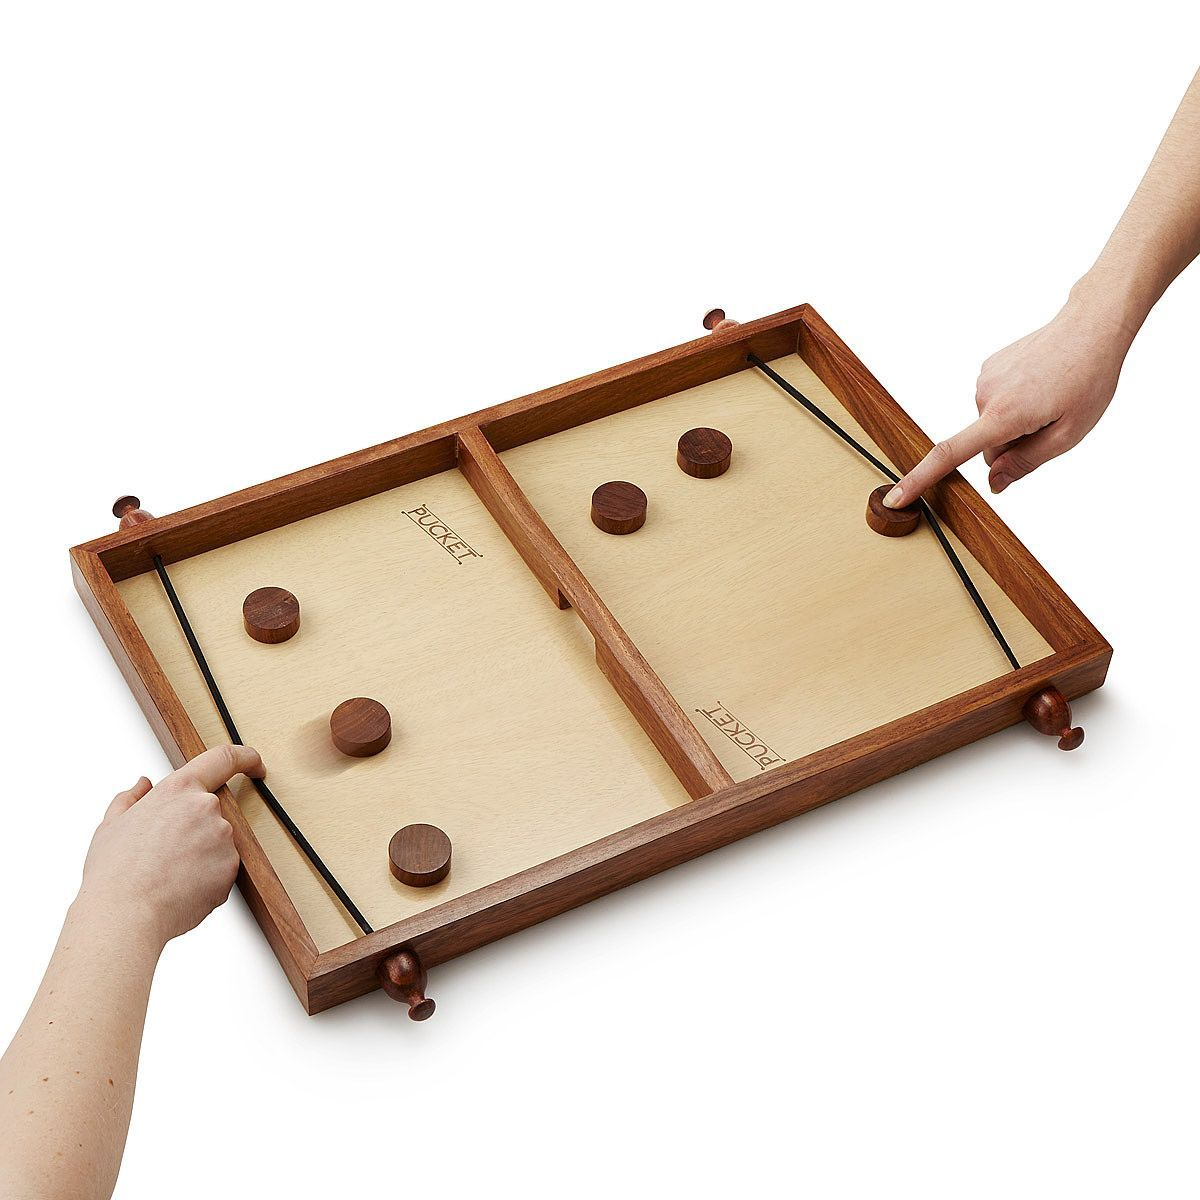 Handmade pucket tabletop gaming and toy